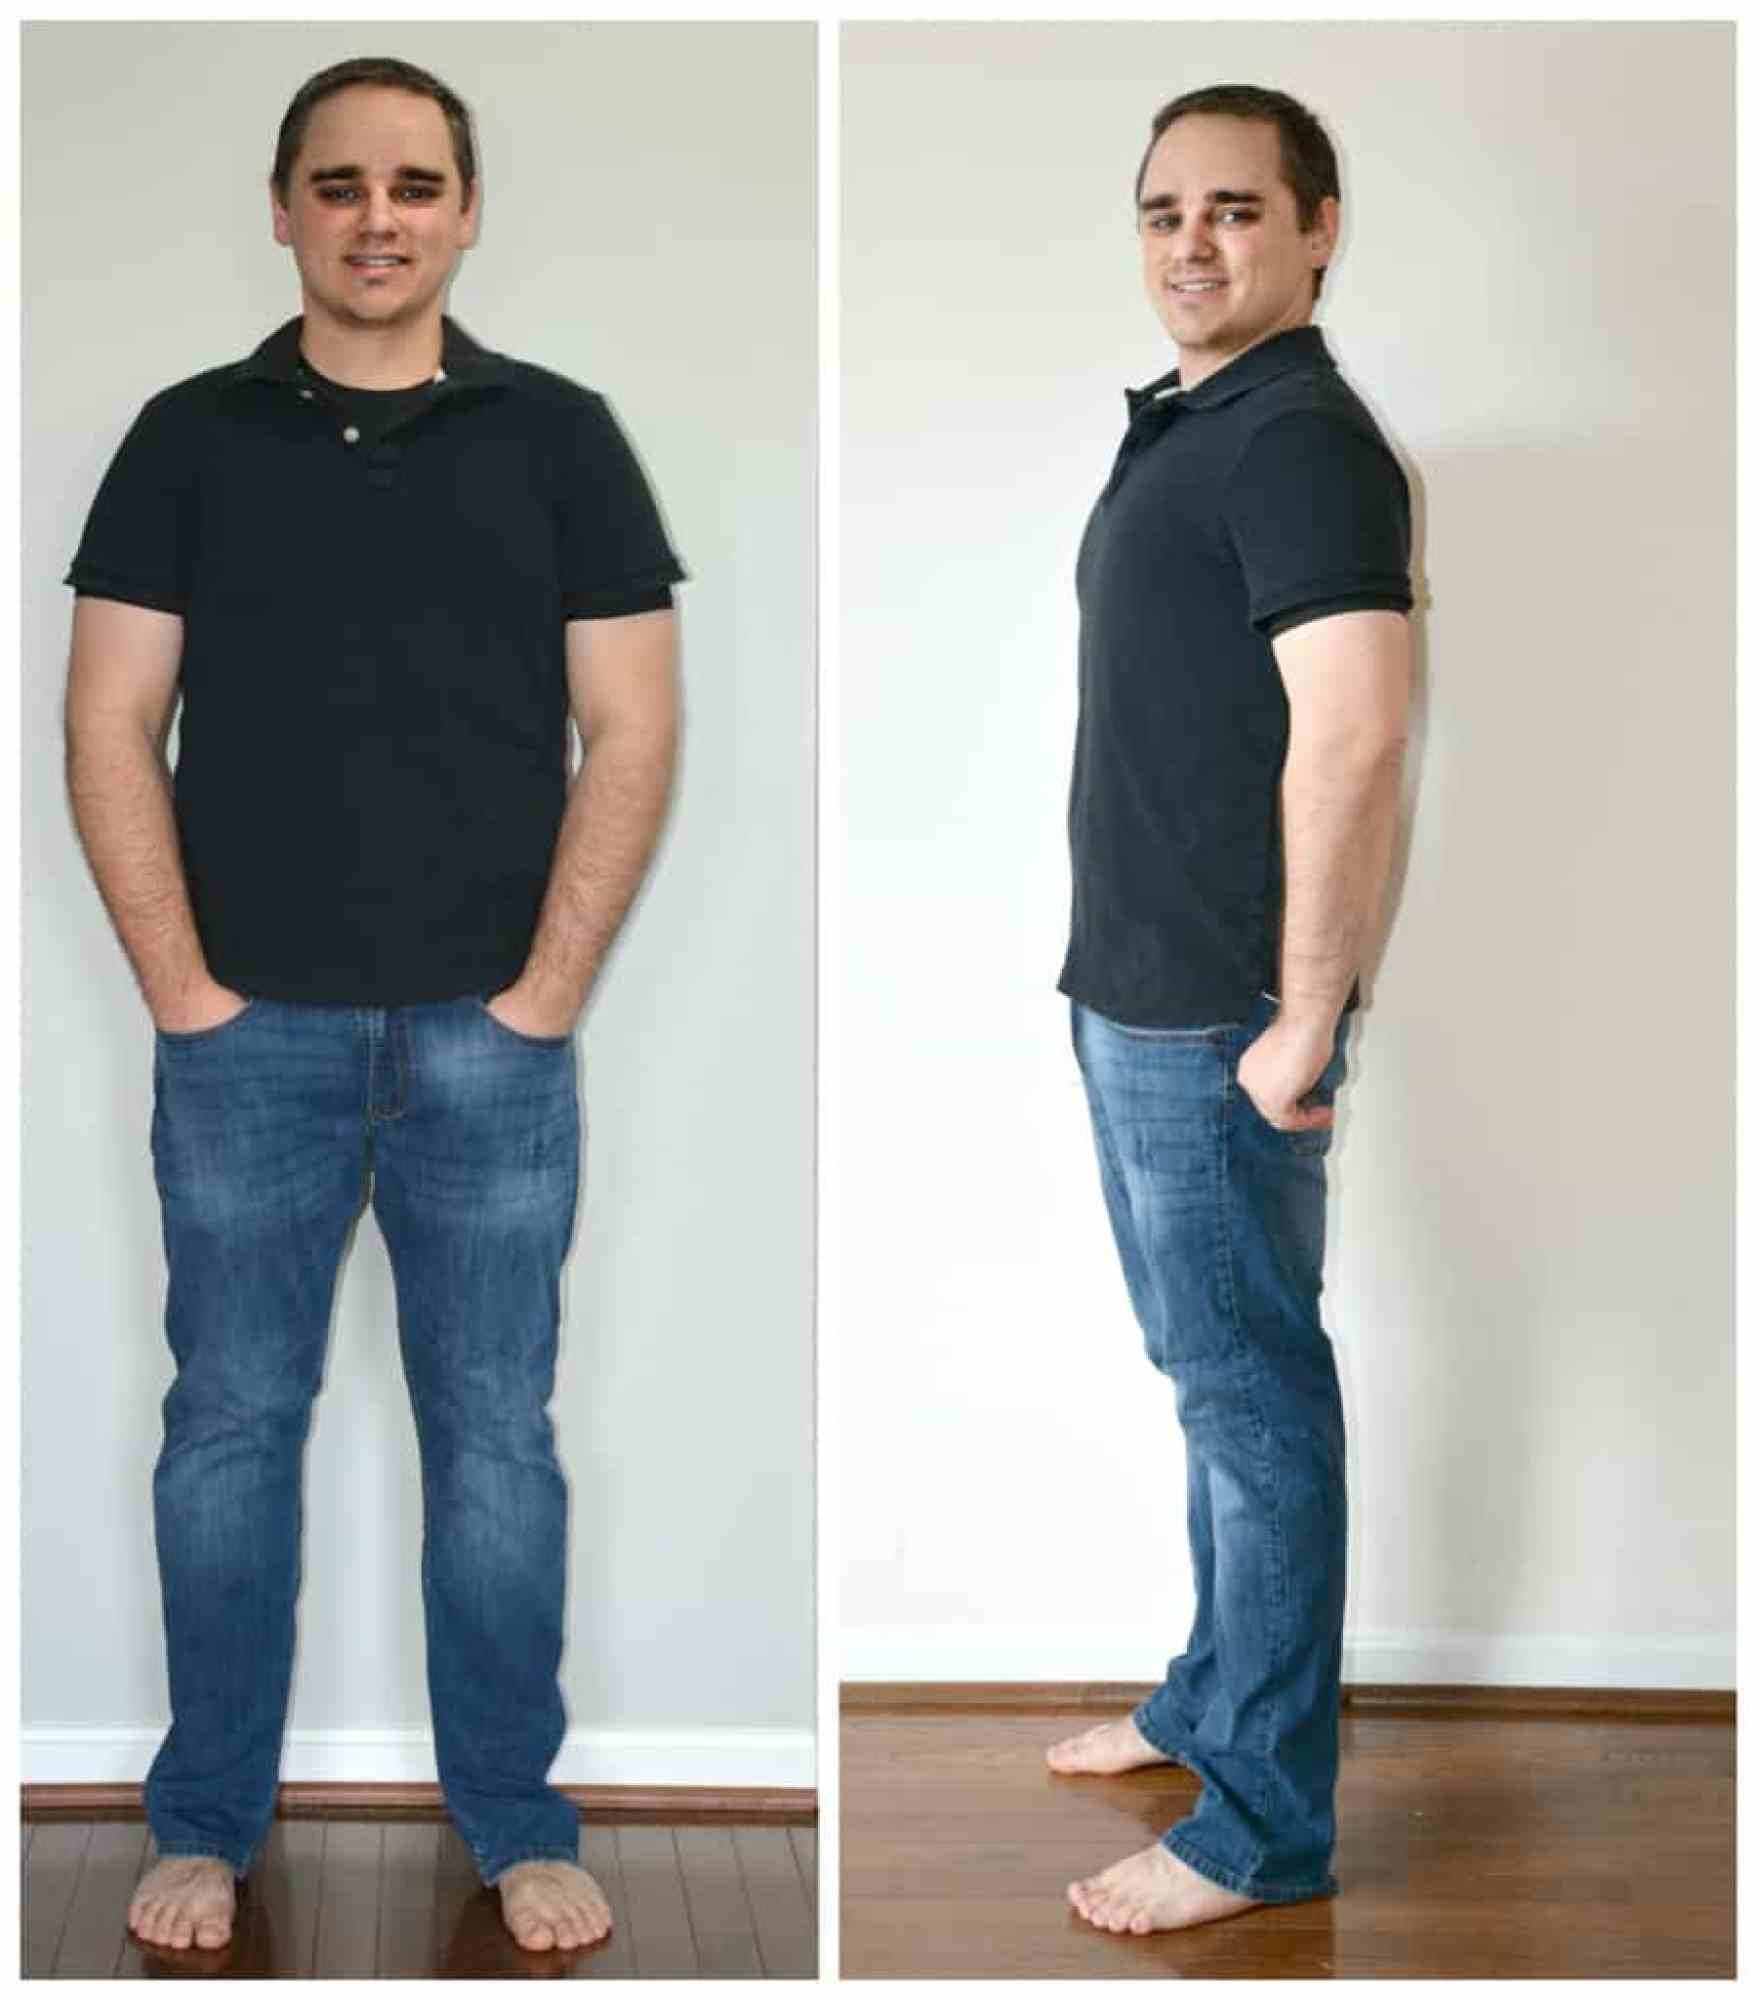 unexplained weight loss upper body